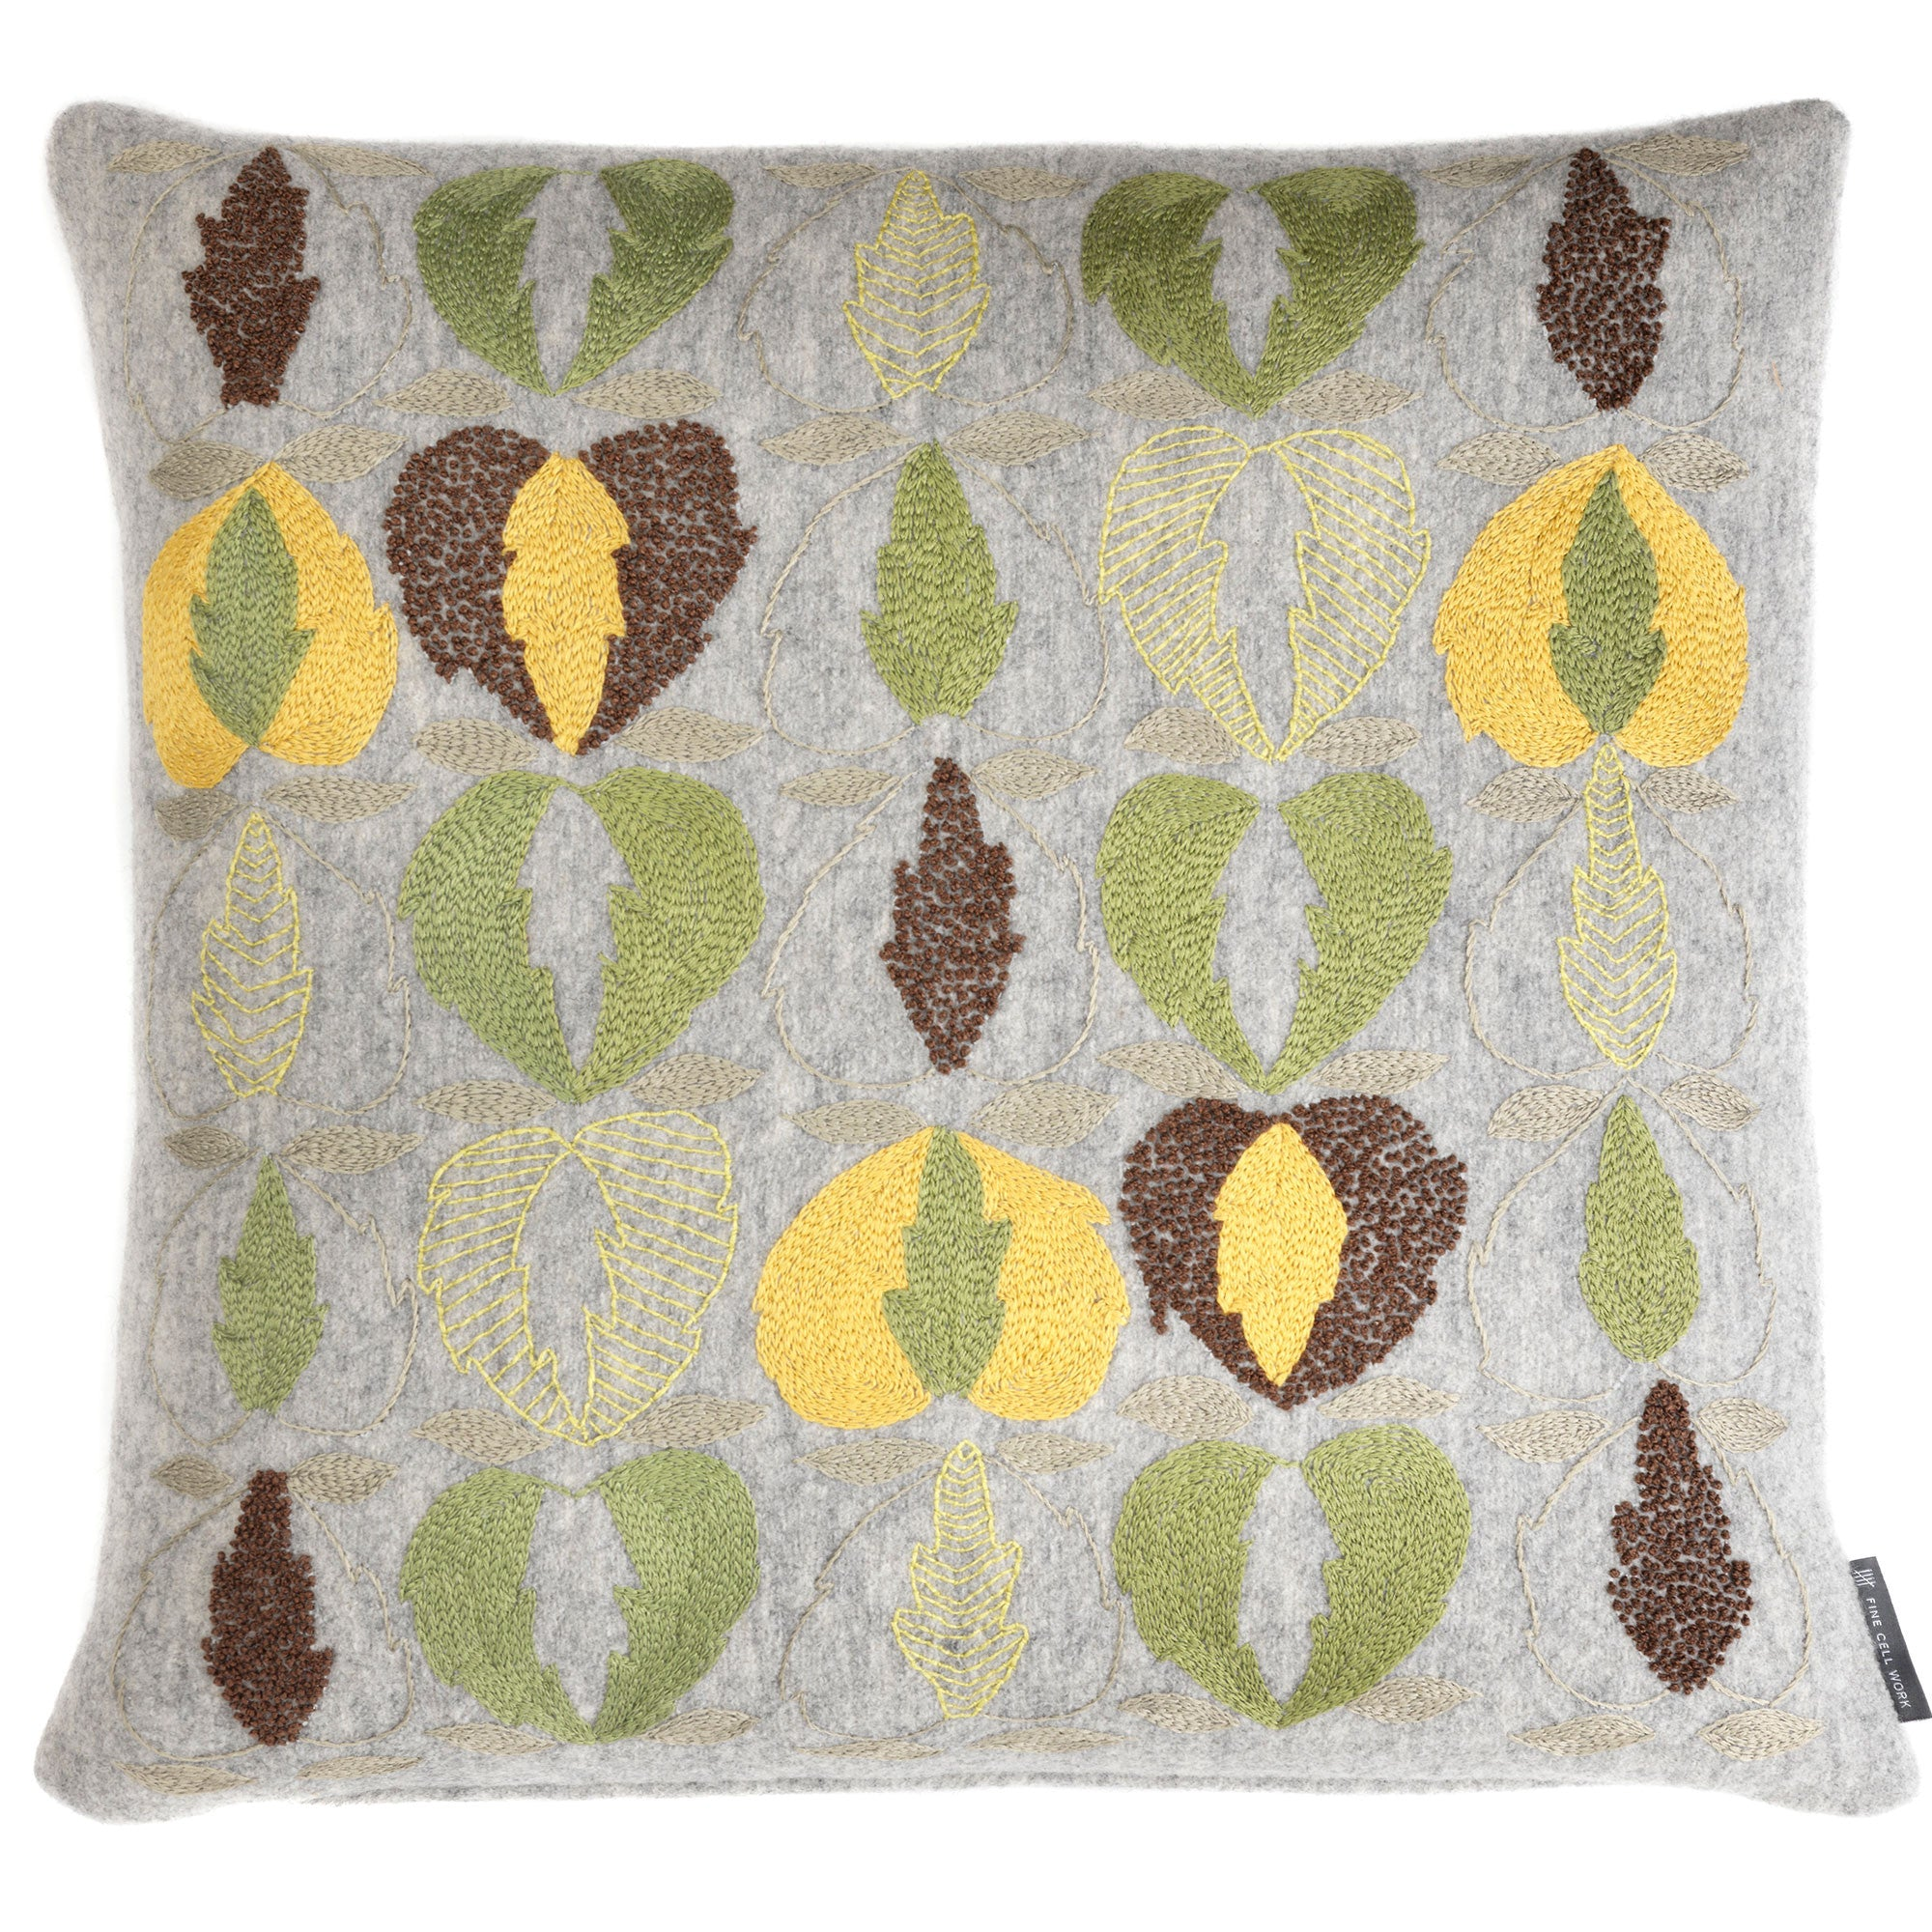 Kit Kemp for Fine Cell Work Heart of Oak Hand Embroidered Cushion Green, Brown and Grey